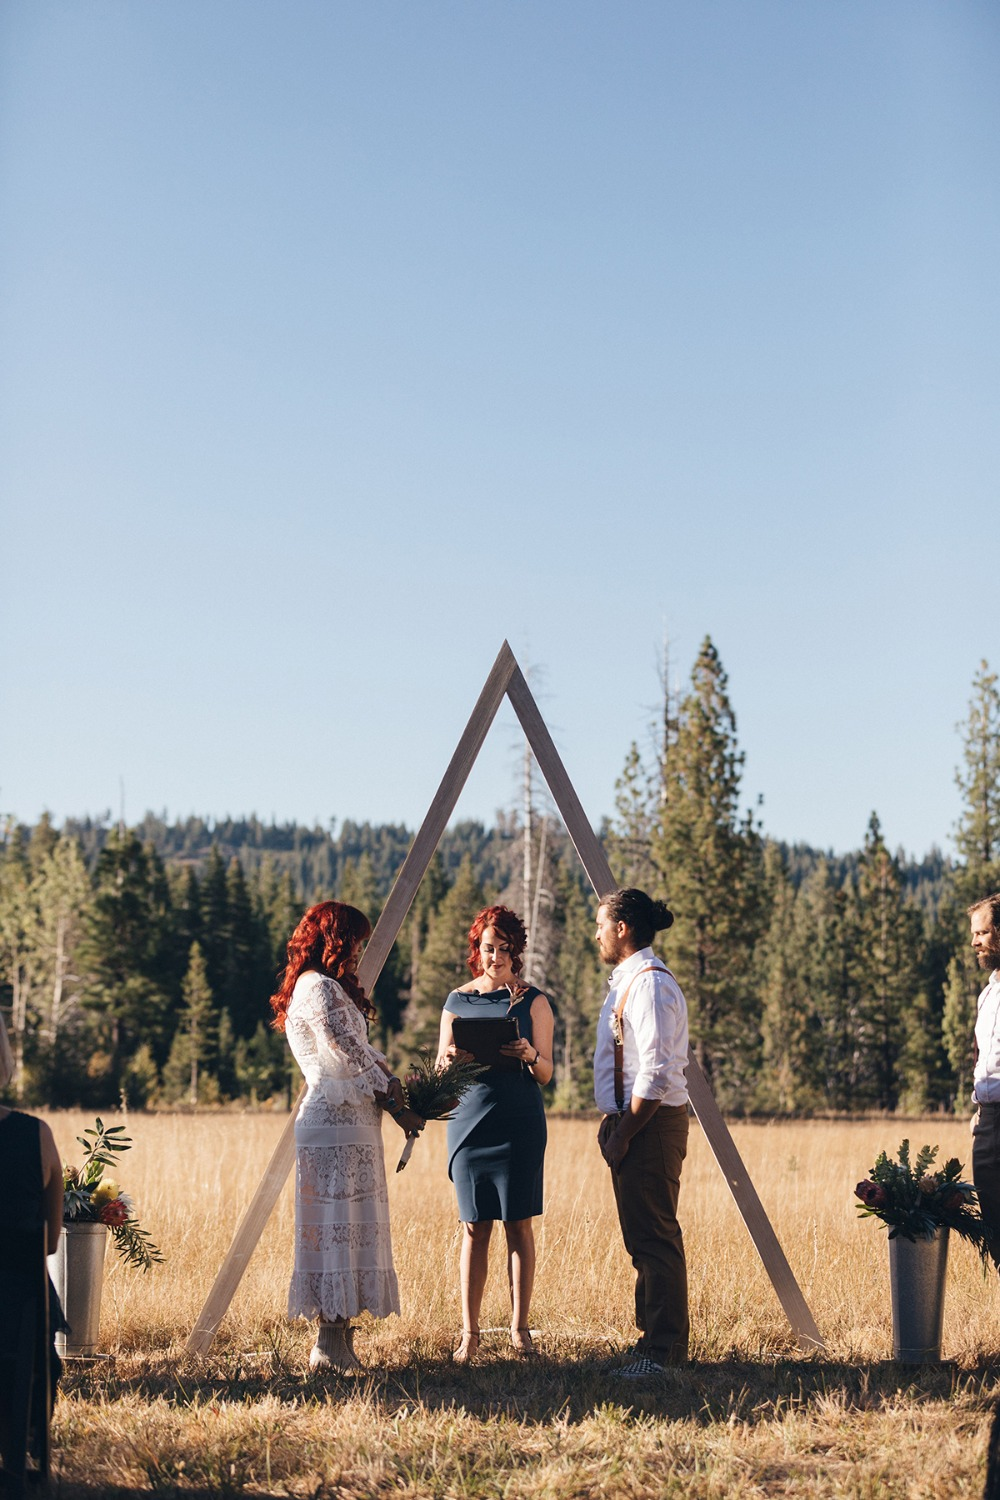 A Beautifully Informal Rustic New Age Wedding